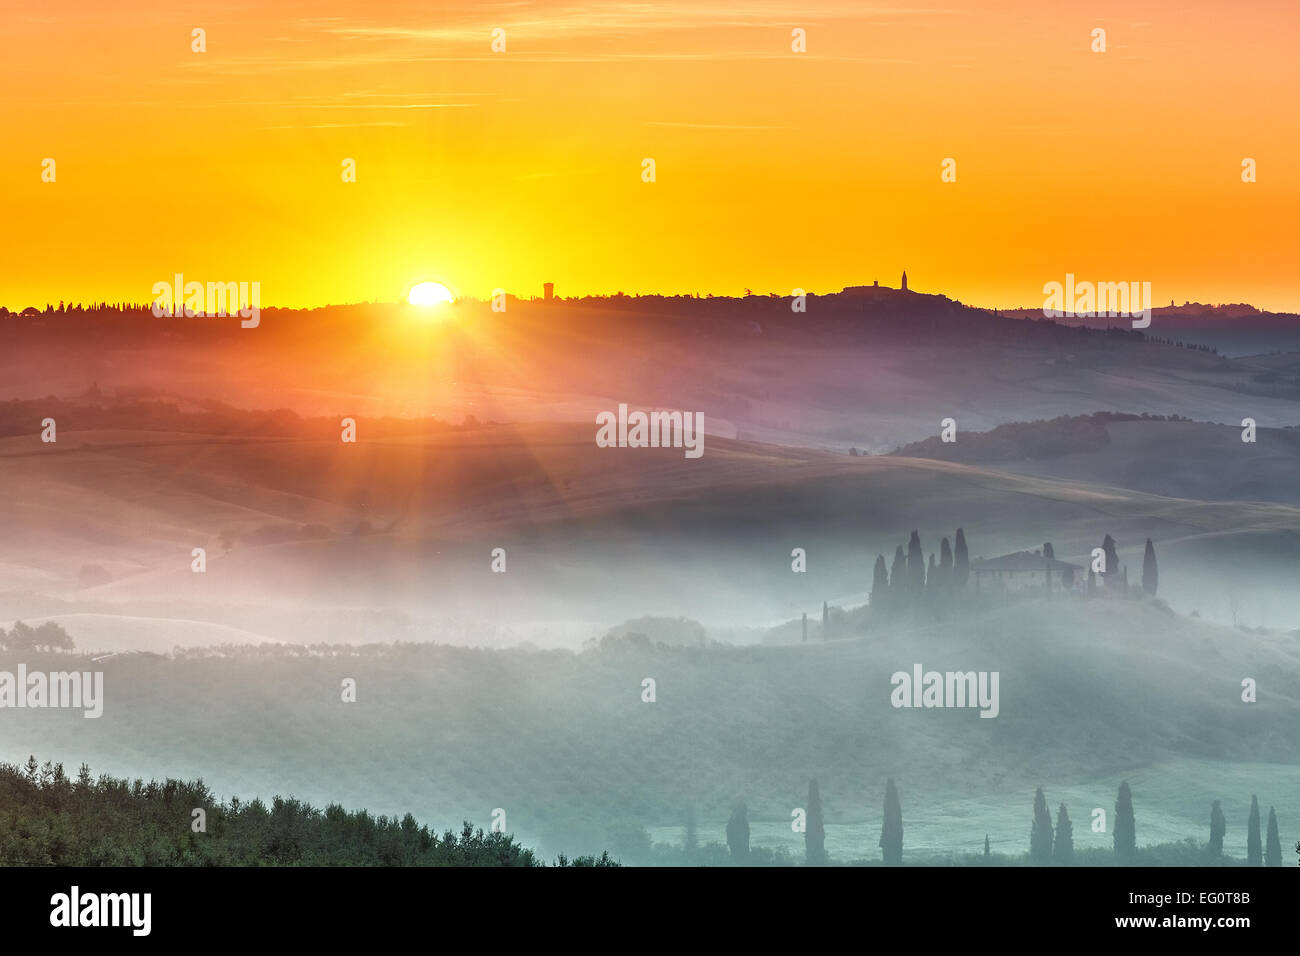 Tuscany sunrise - Stock Image